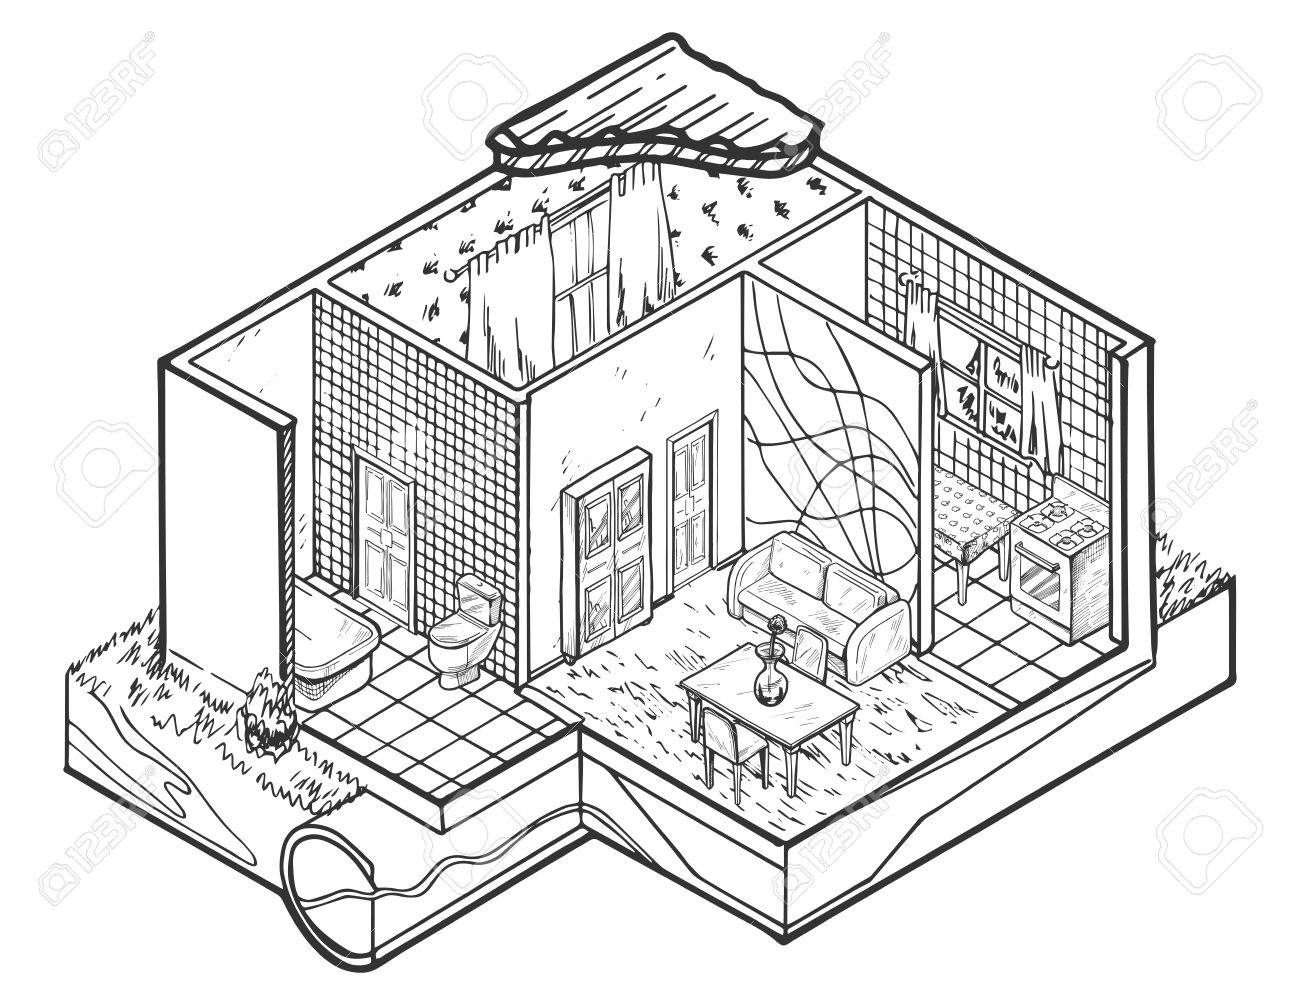 https://previews.123rf.com/images/istry/istry1707/istry170700043/82177753-vector-illustration-of-house-interior-hand-drawn-architecture-illustration-.jpg